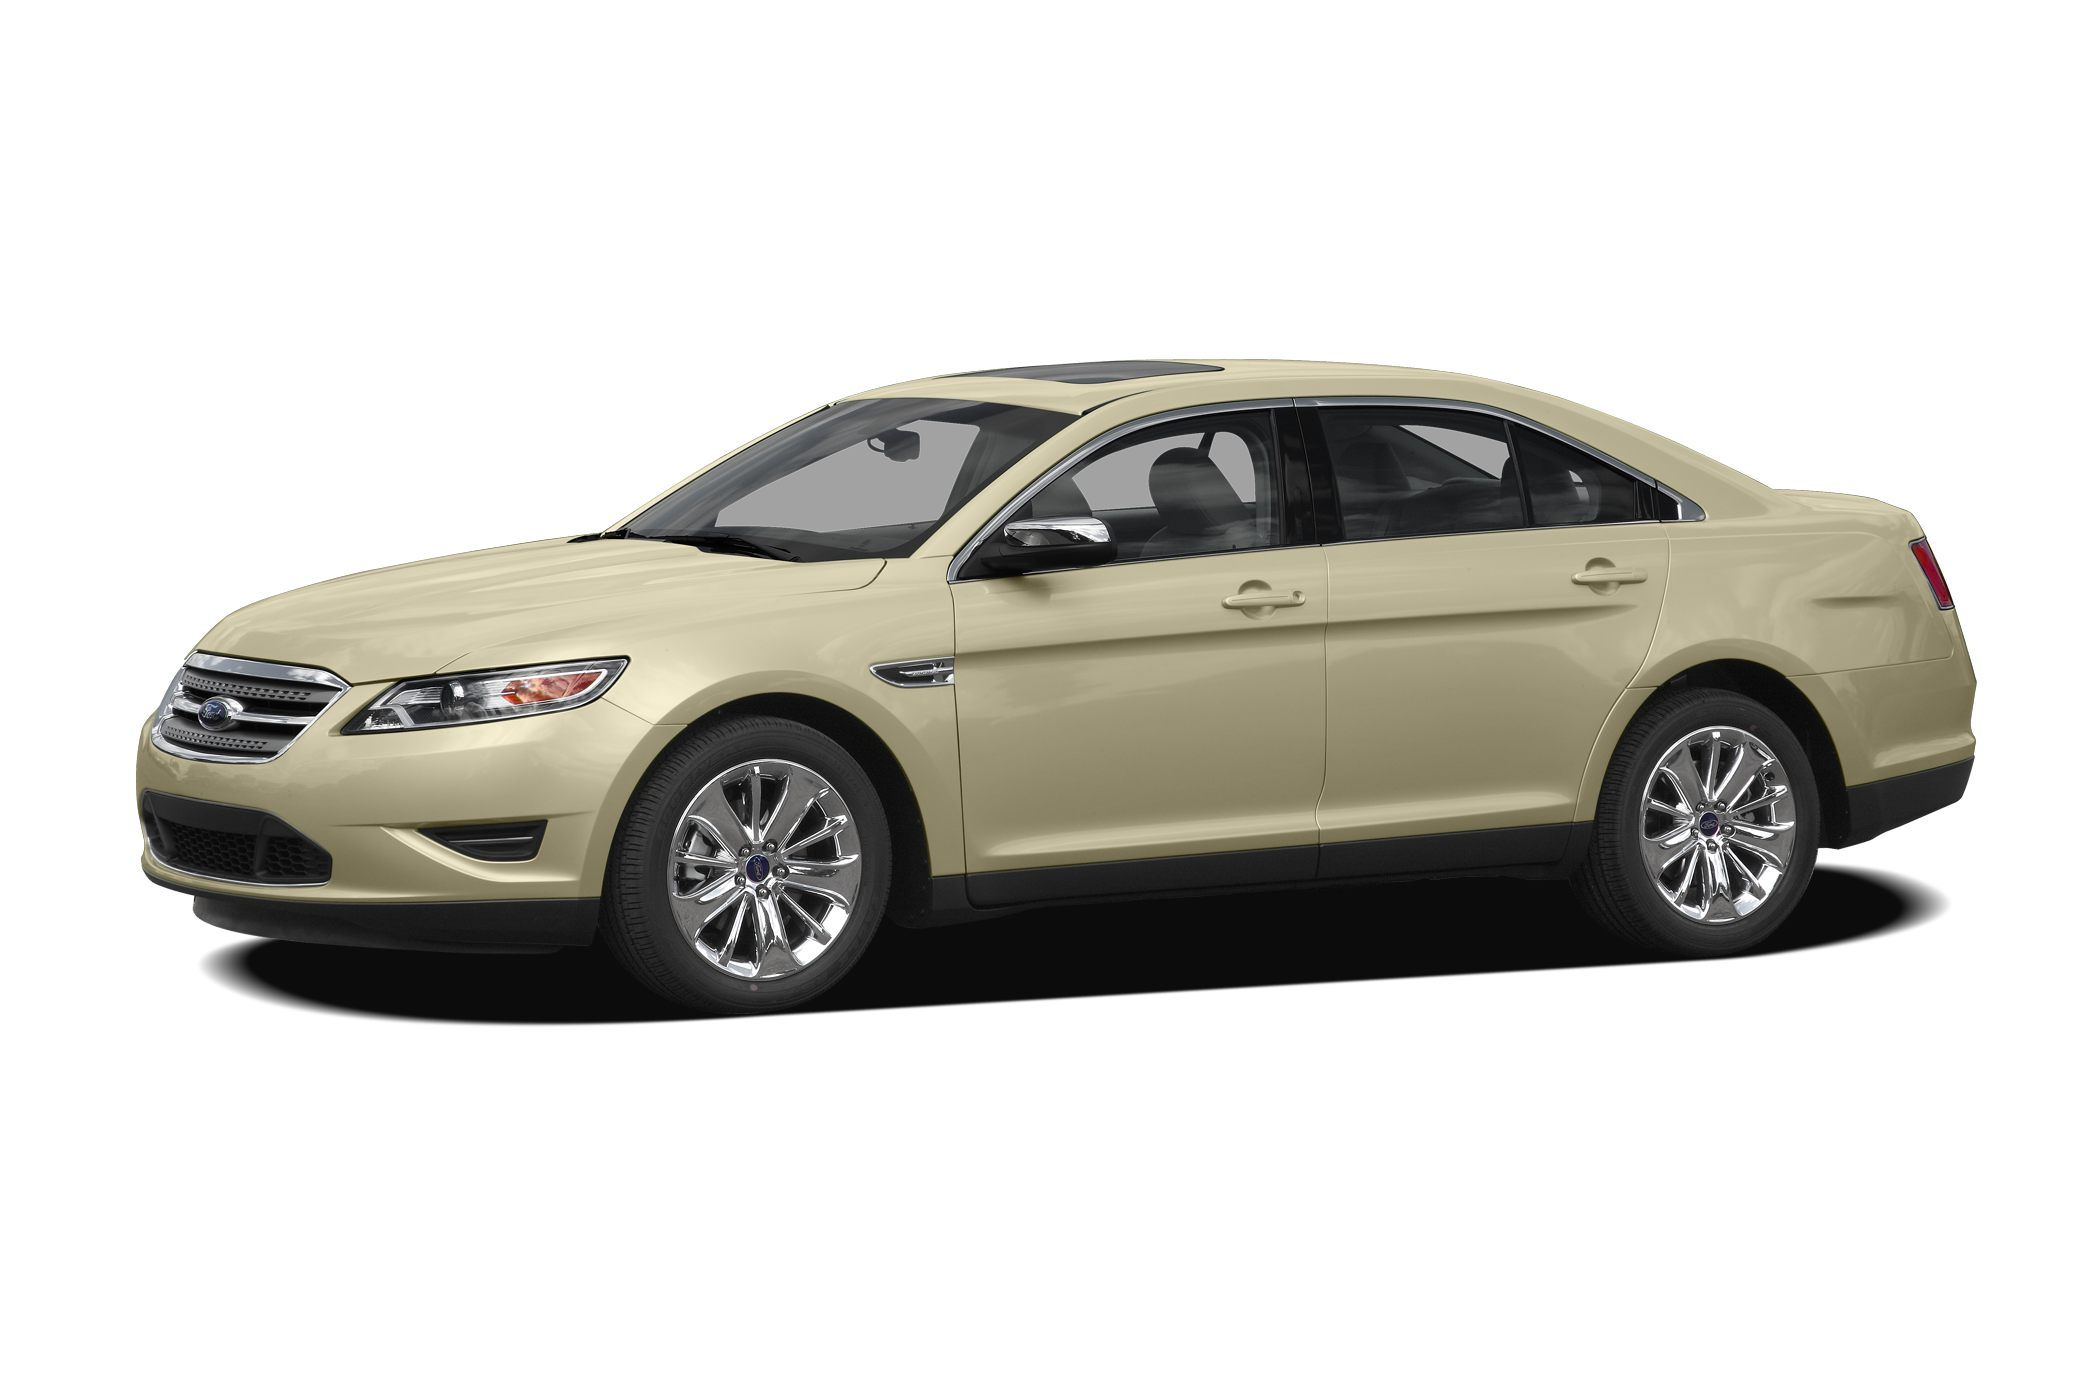 2010 Ford Taurus Limited Sedan for sale in Marion for $14,995 with 89,305 miles